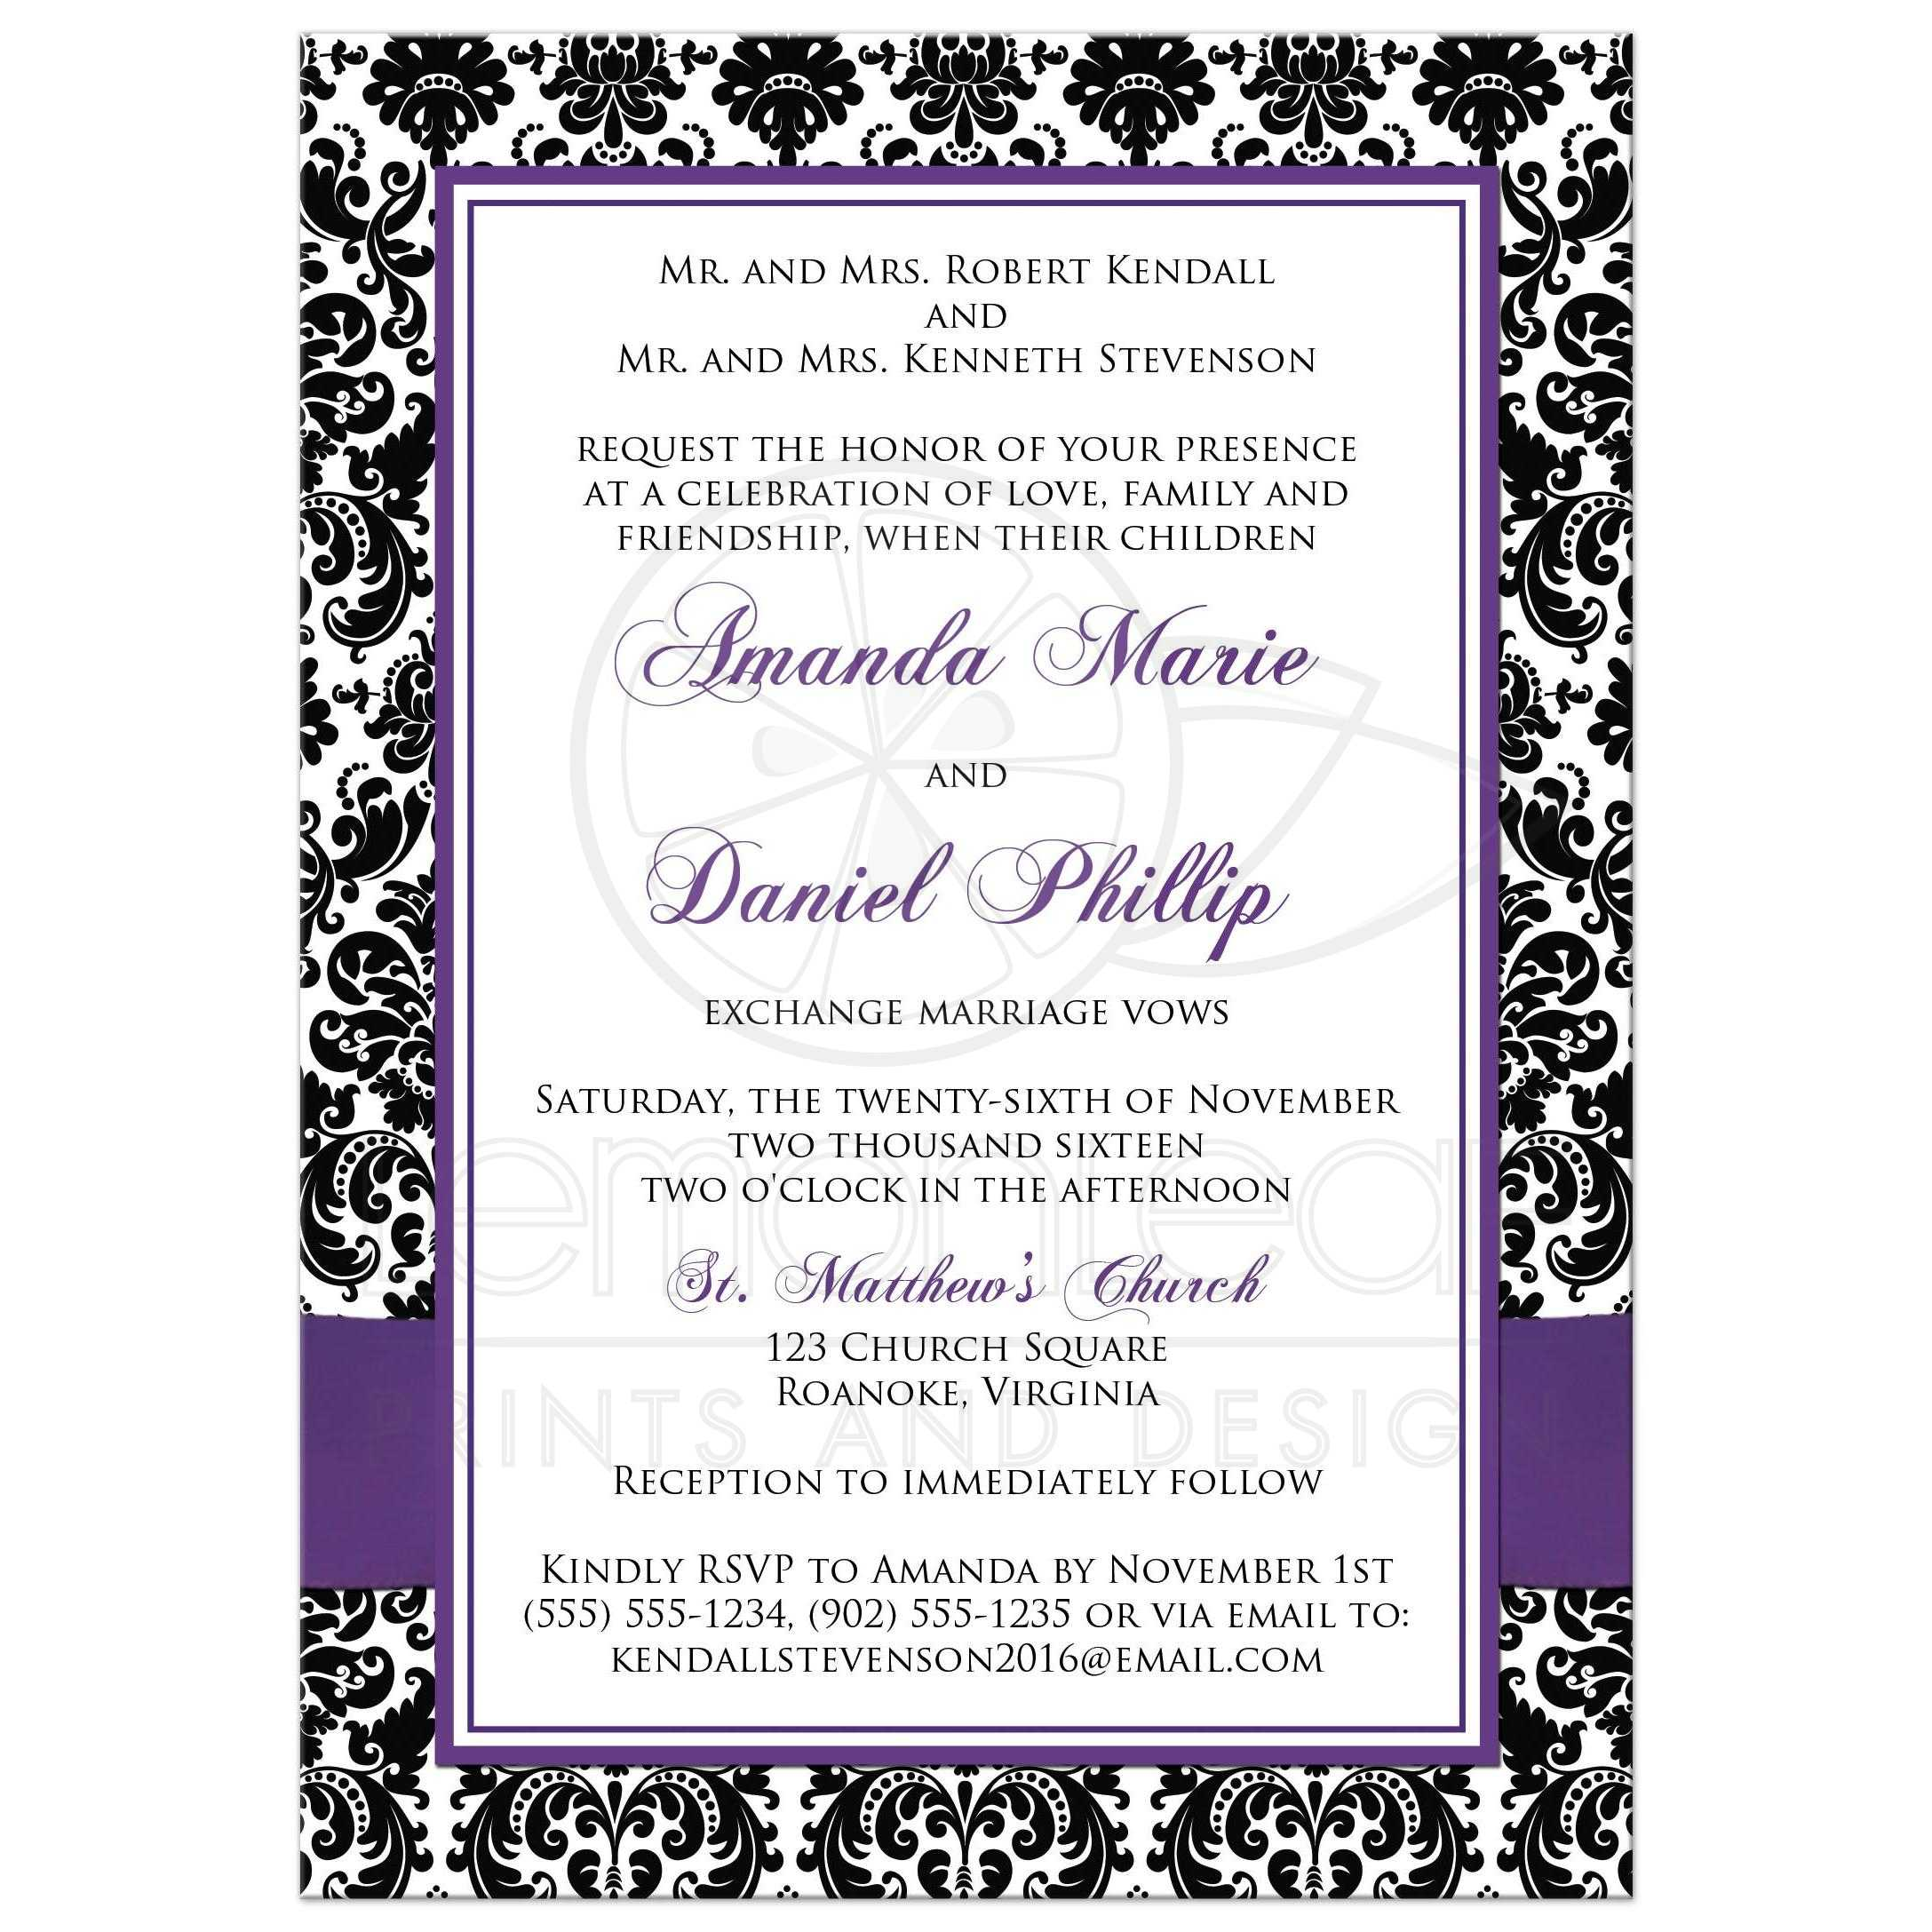 ... Black, And White Damask Pattern Photo Template Wedding Invite With  Ribbon ...